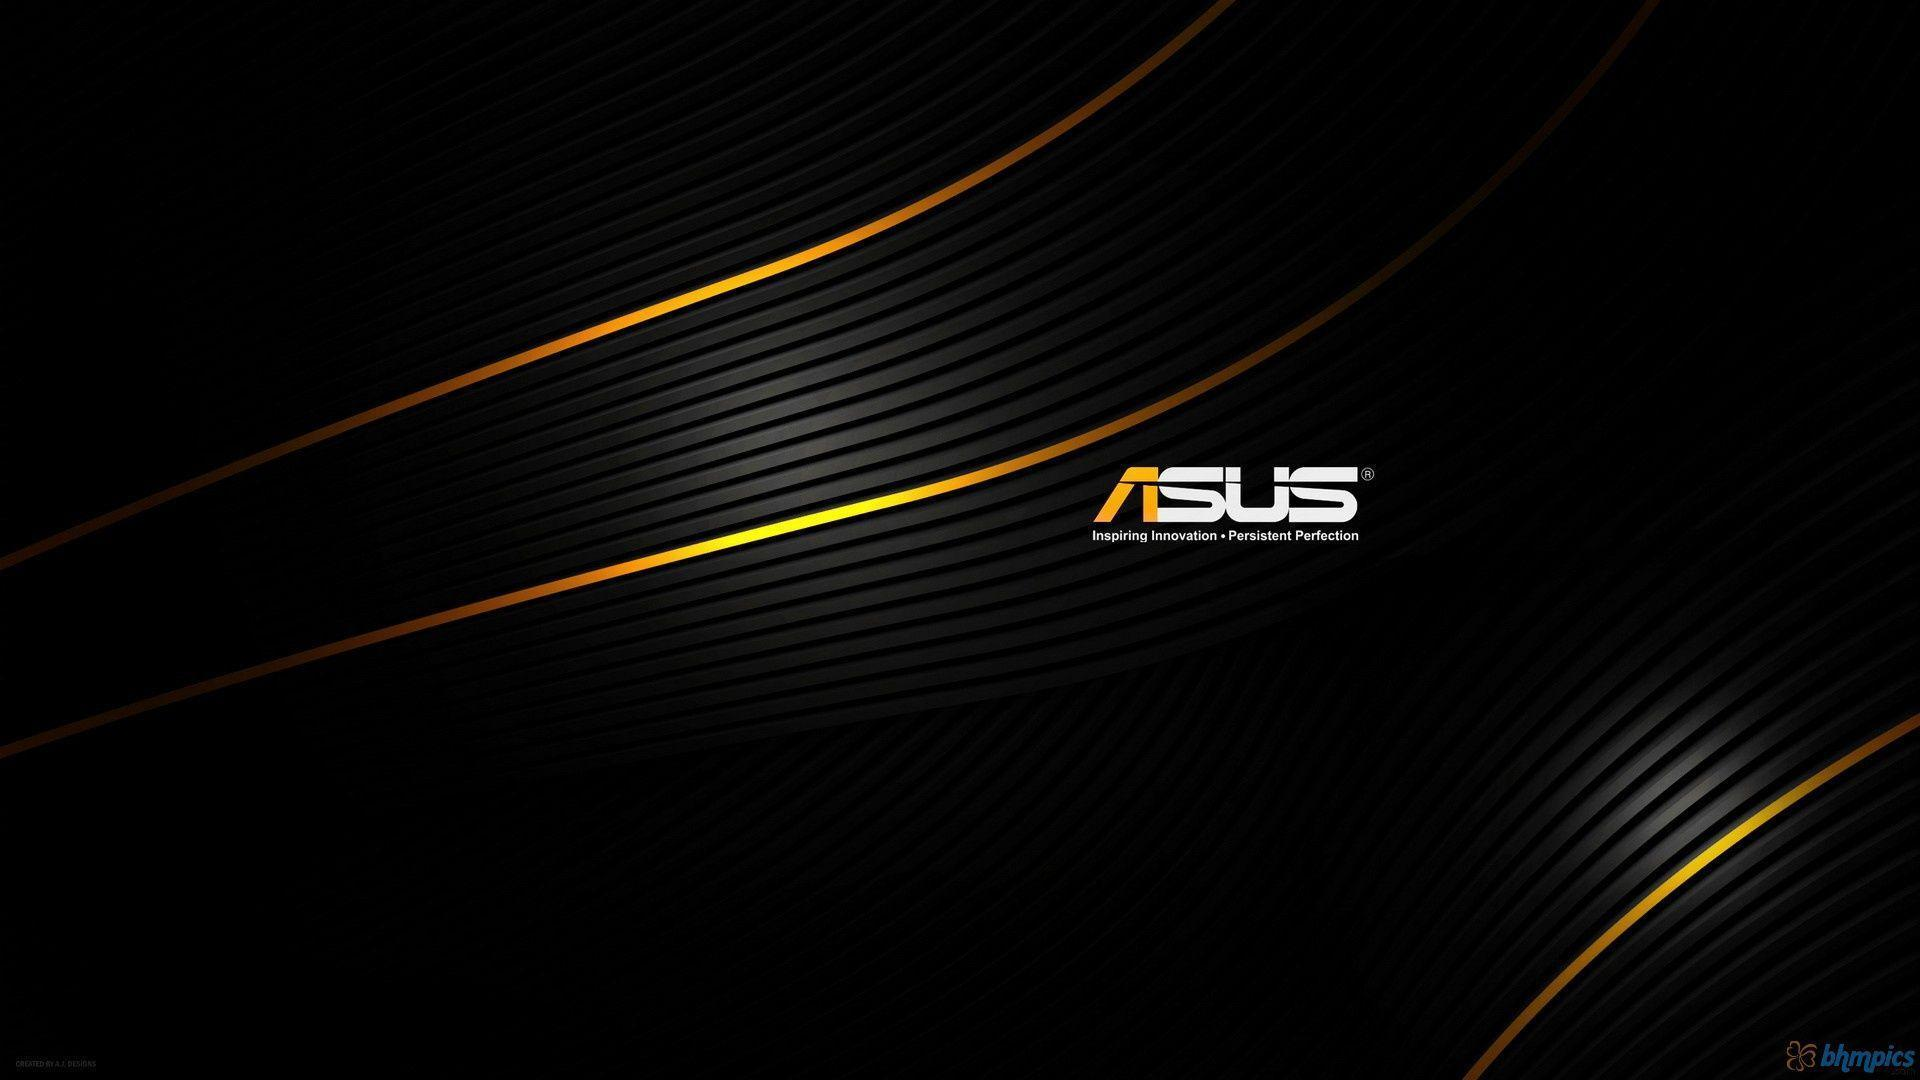 Asus VivoBook Wallpapers Top Free Asus VivoBook